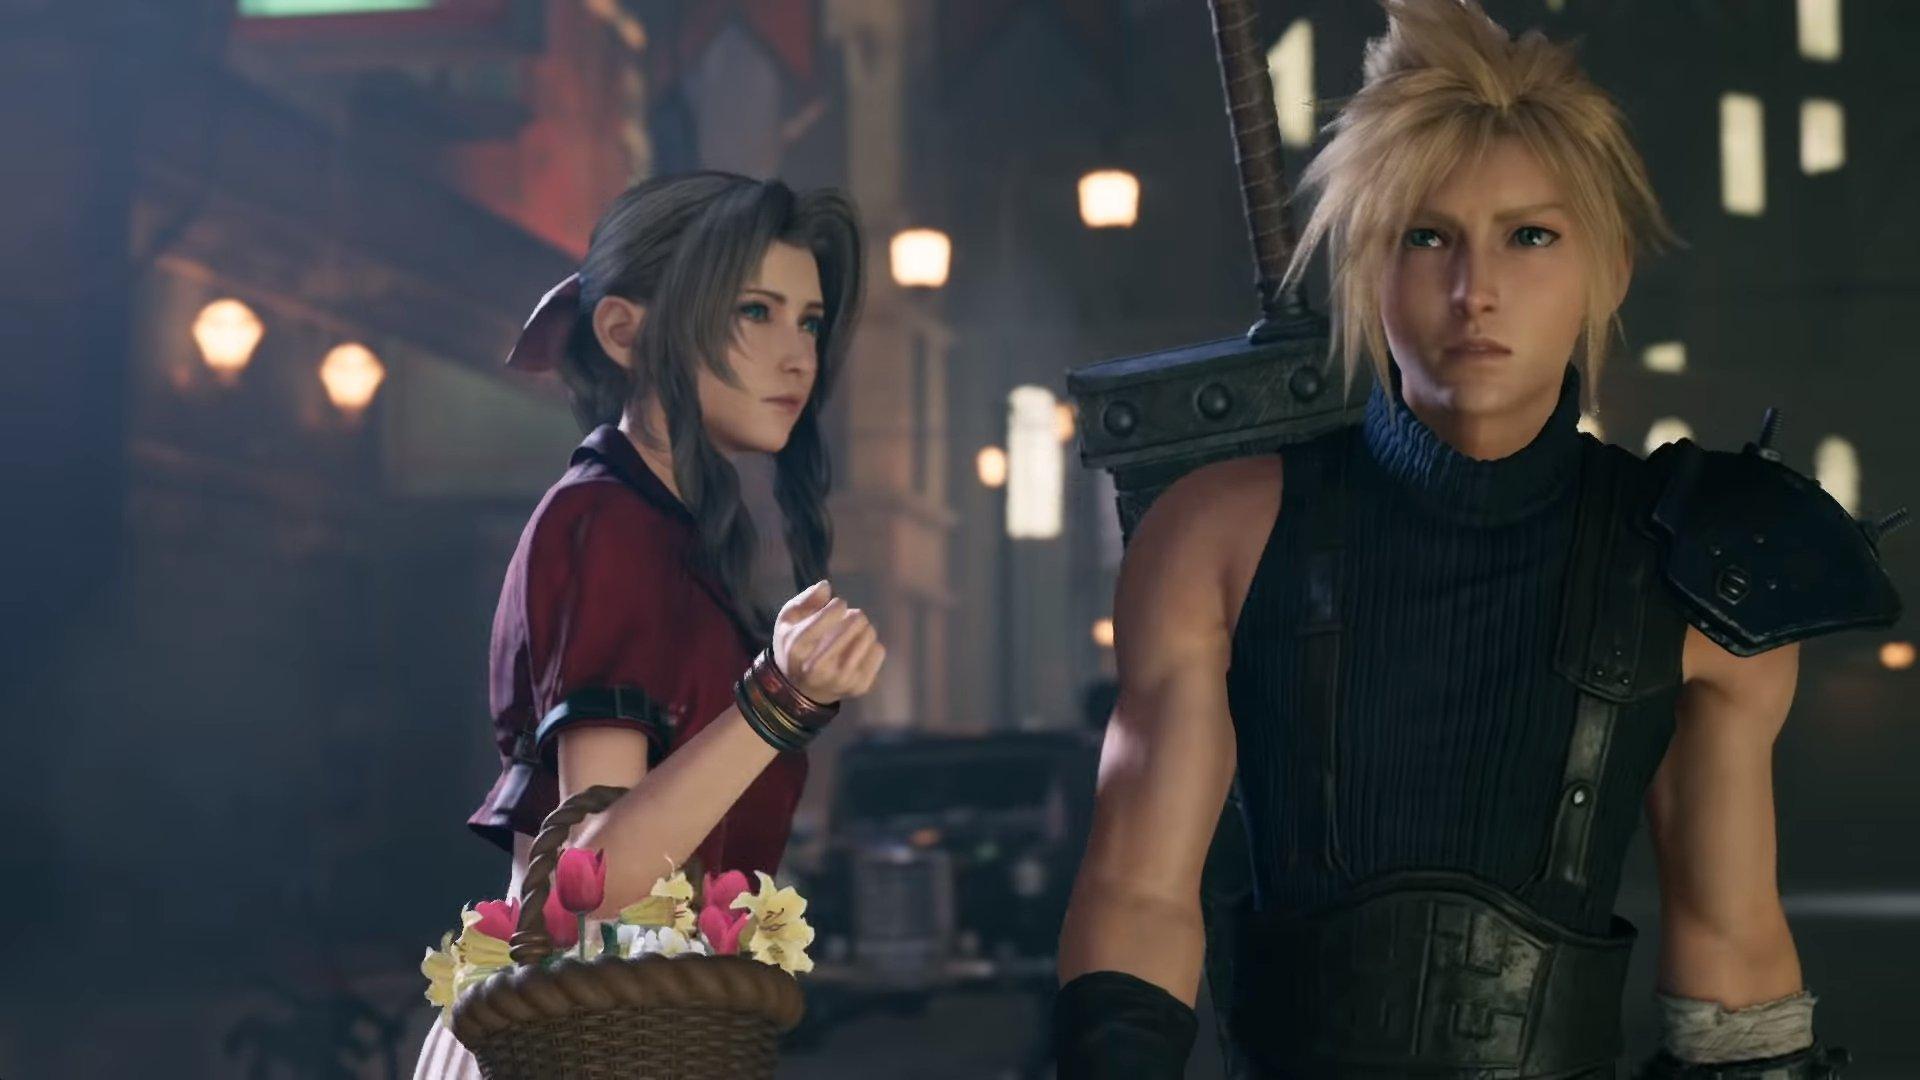 Final Fantasy VII Remake trailer surfaces with a promise of more to come Header Image